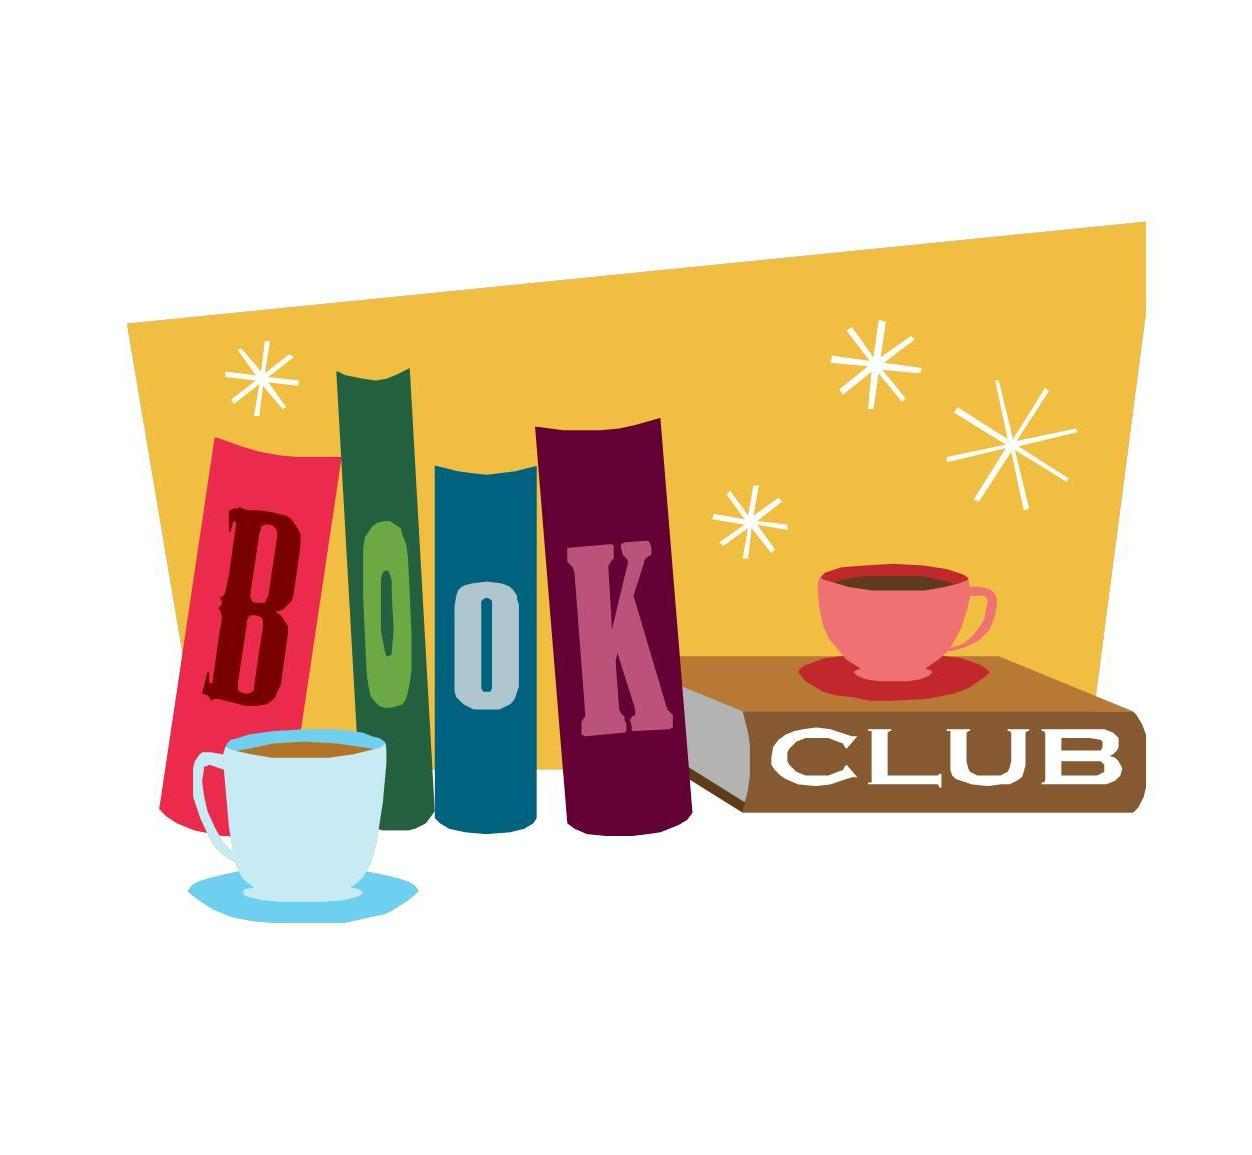 A book club is a group of people who meet to discuss a book or books that they have read and express their opinions, likes, dislikes, etc. It is more often called simply a book club, a term that is also used to describe a book sales club, which can cause replieslieu.ml frequently used terms to describe a book discussion club include reading group, book group, and book discussion group.